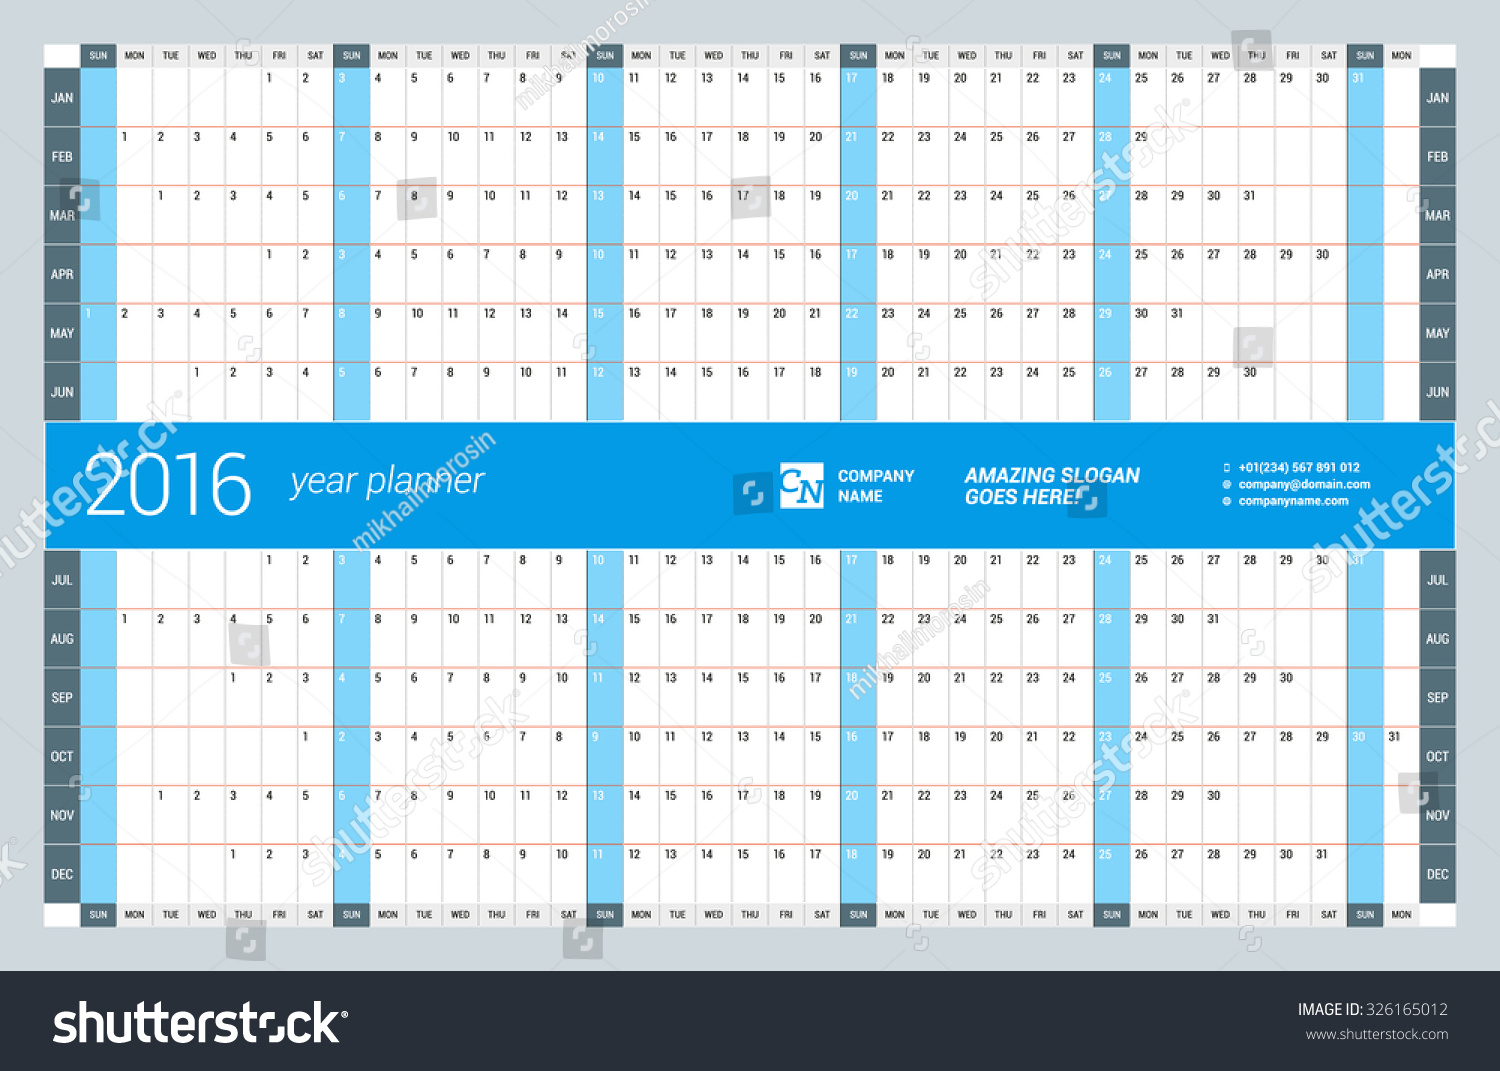 Yearly Calendar Design : Yearly wall calendar planner template stock vector